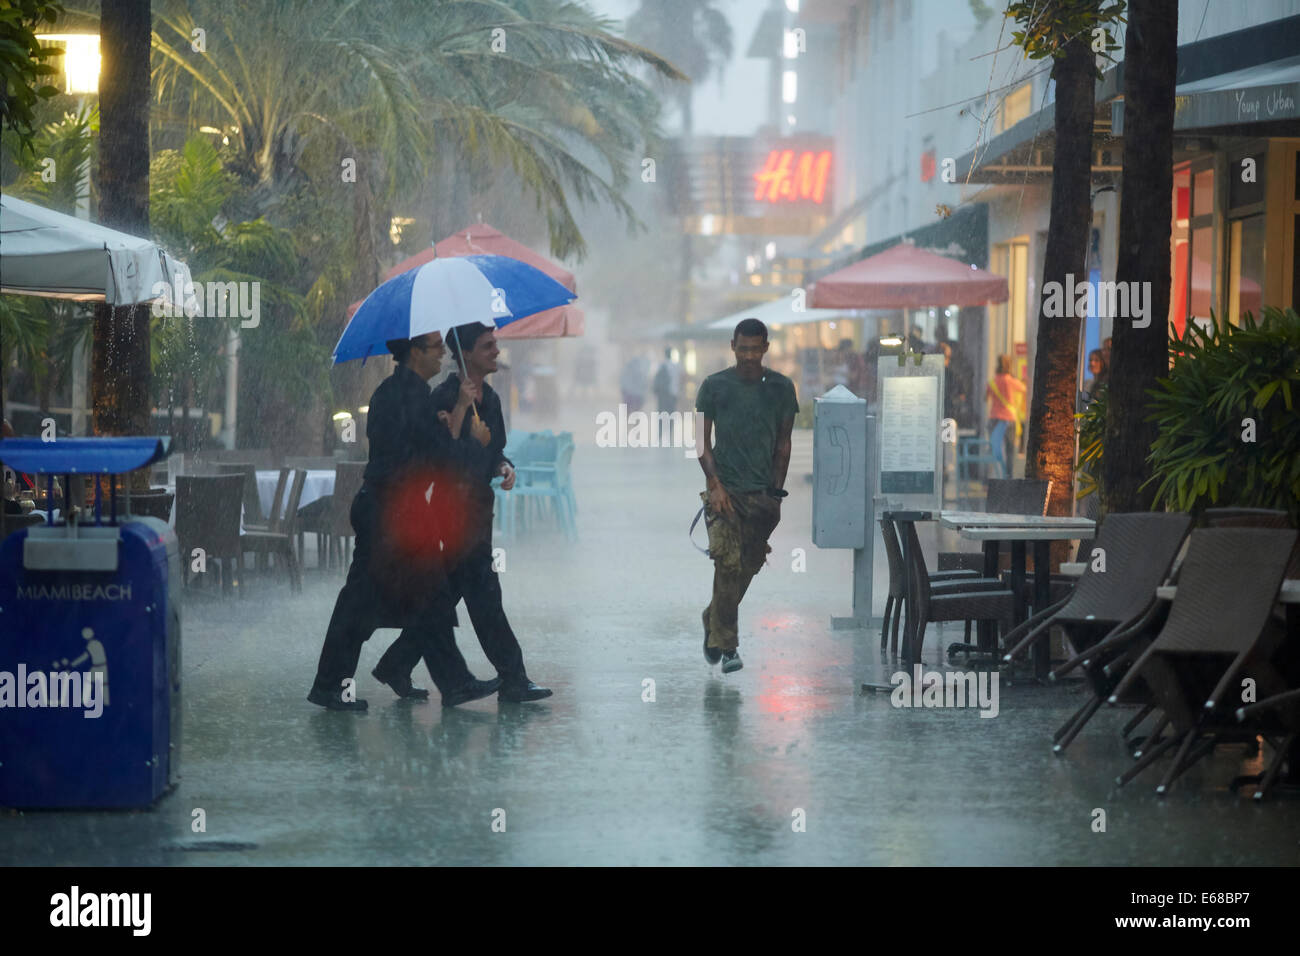 Picture of two waiters sharing an umbrella to serve the public in the pouring rain - Stock Image